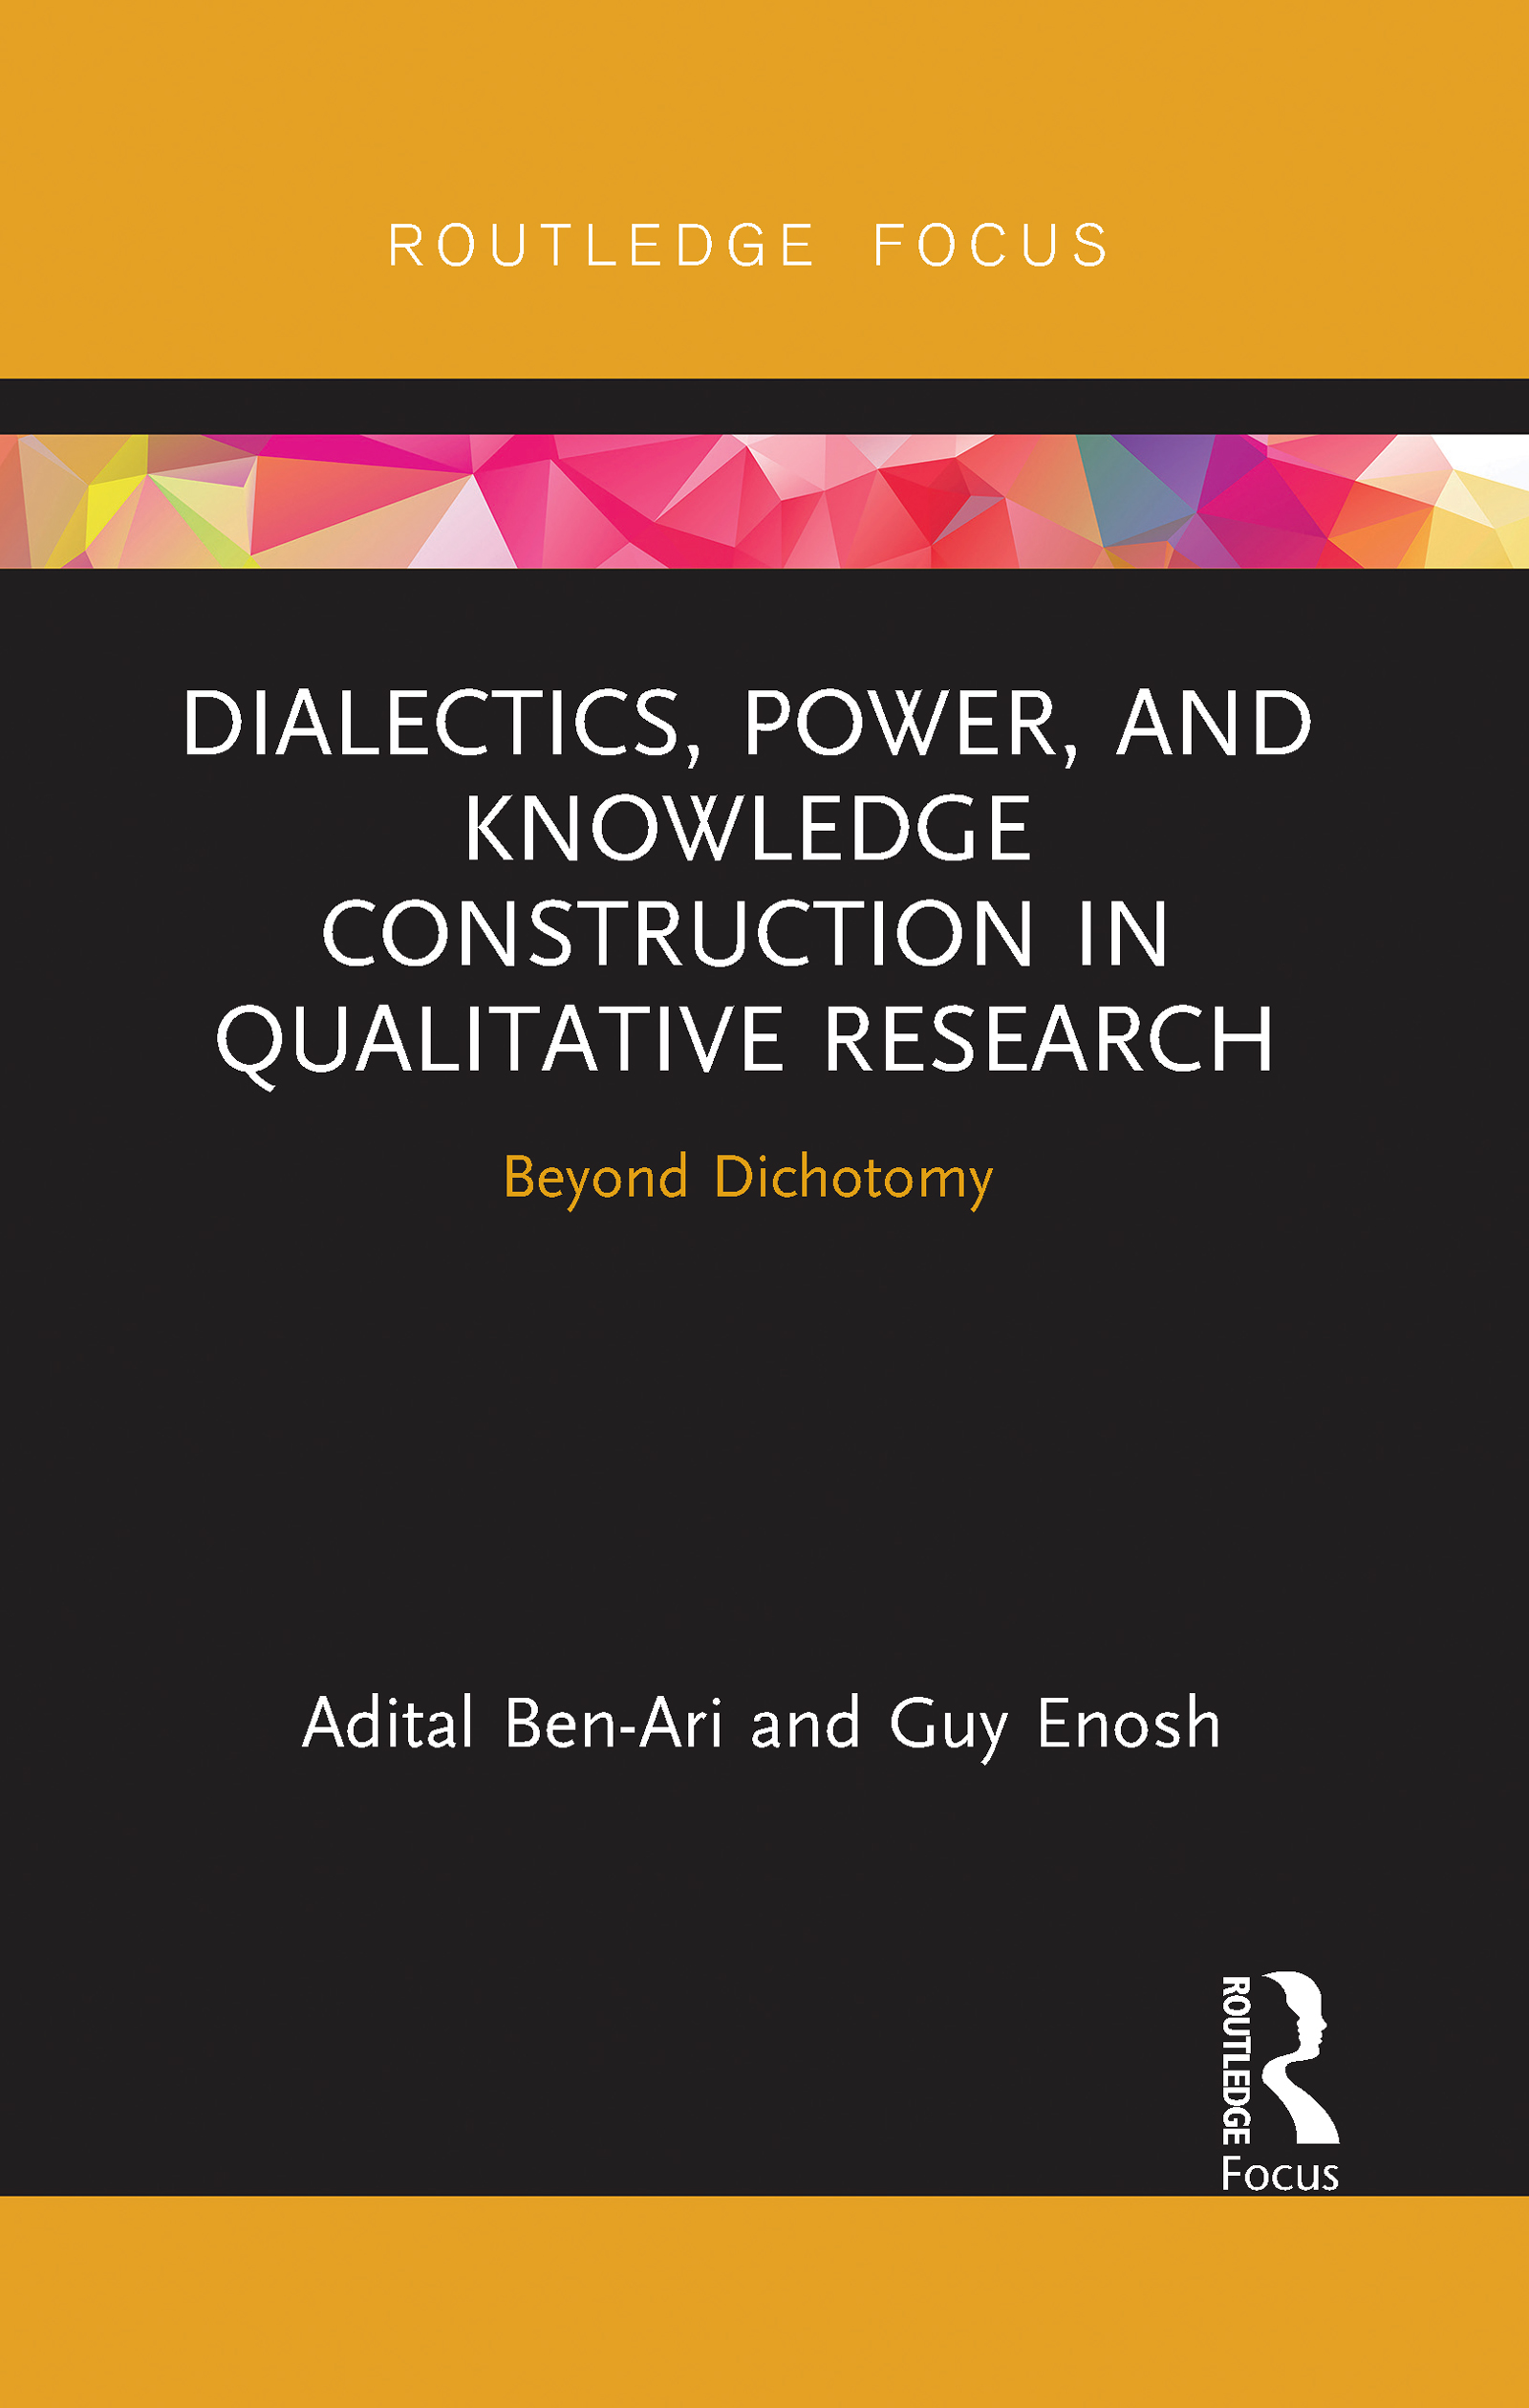 Dialectics, Power, and Knowledge Construction in Qualitative Research